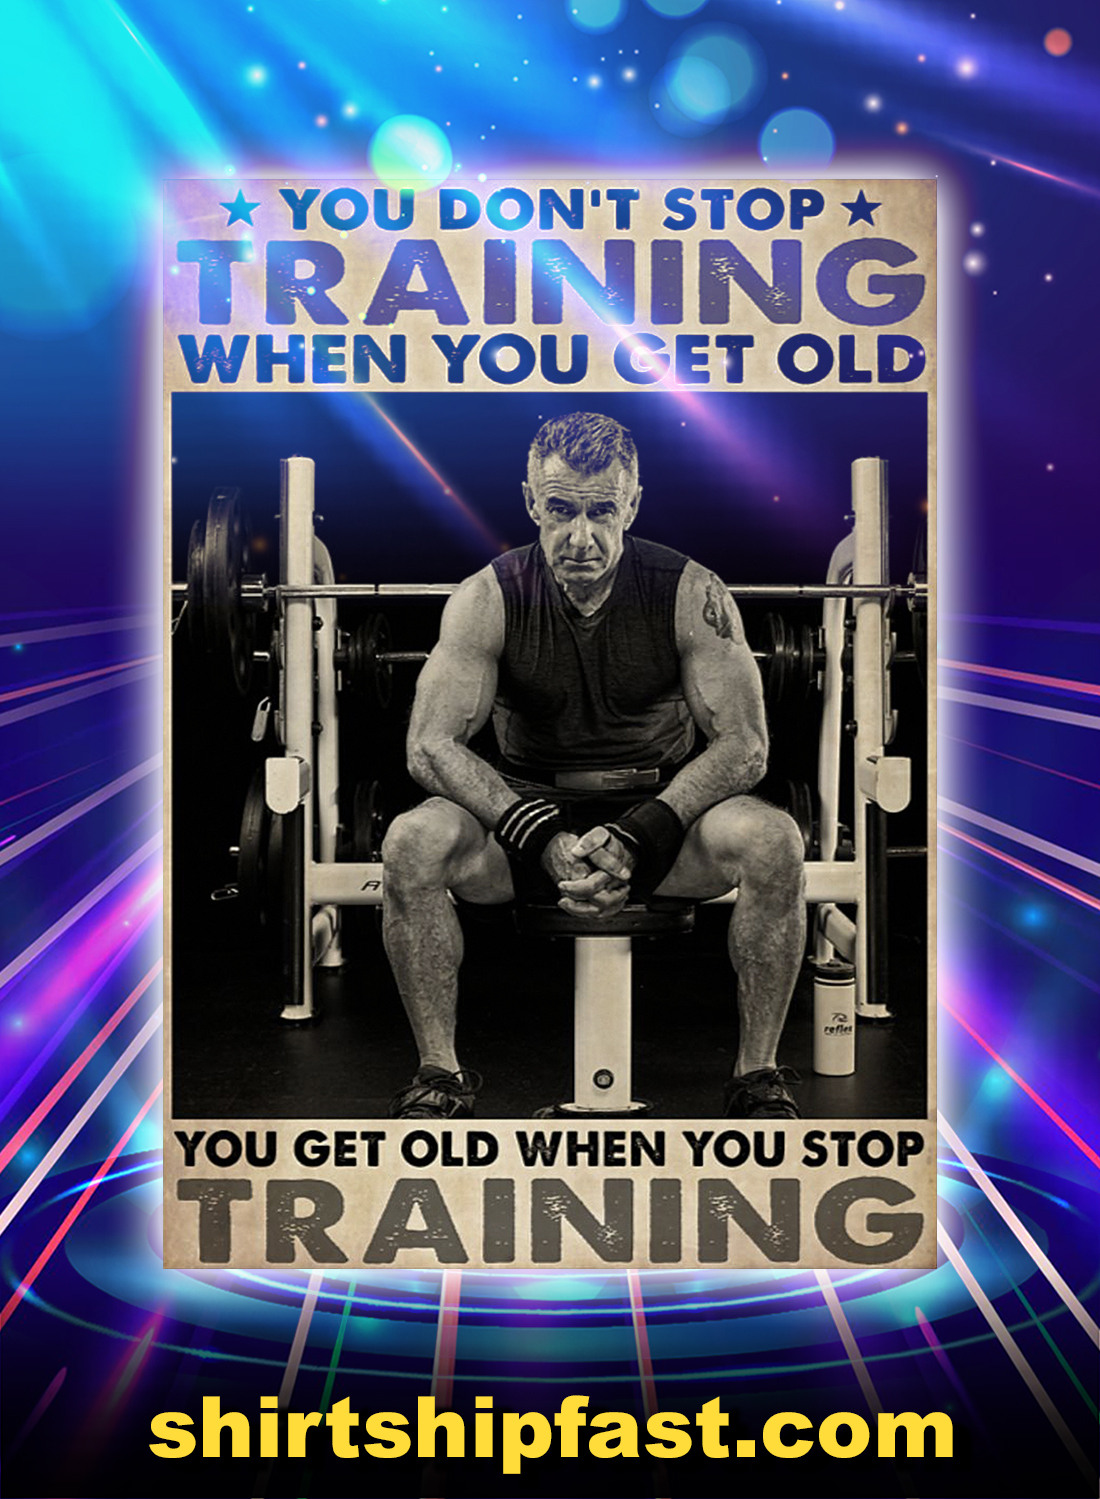 Old man bodybuilding you don't stop training when you get old poster - A4